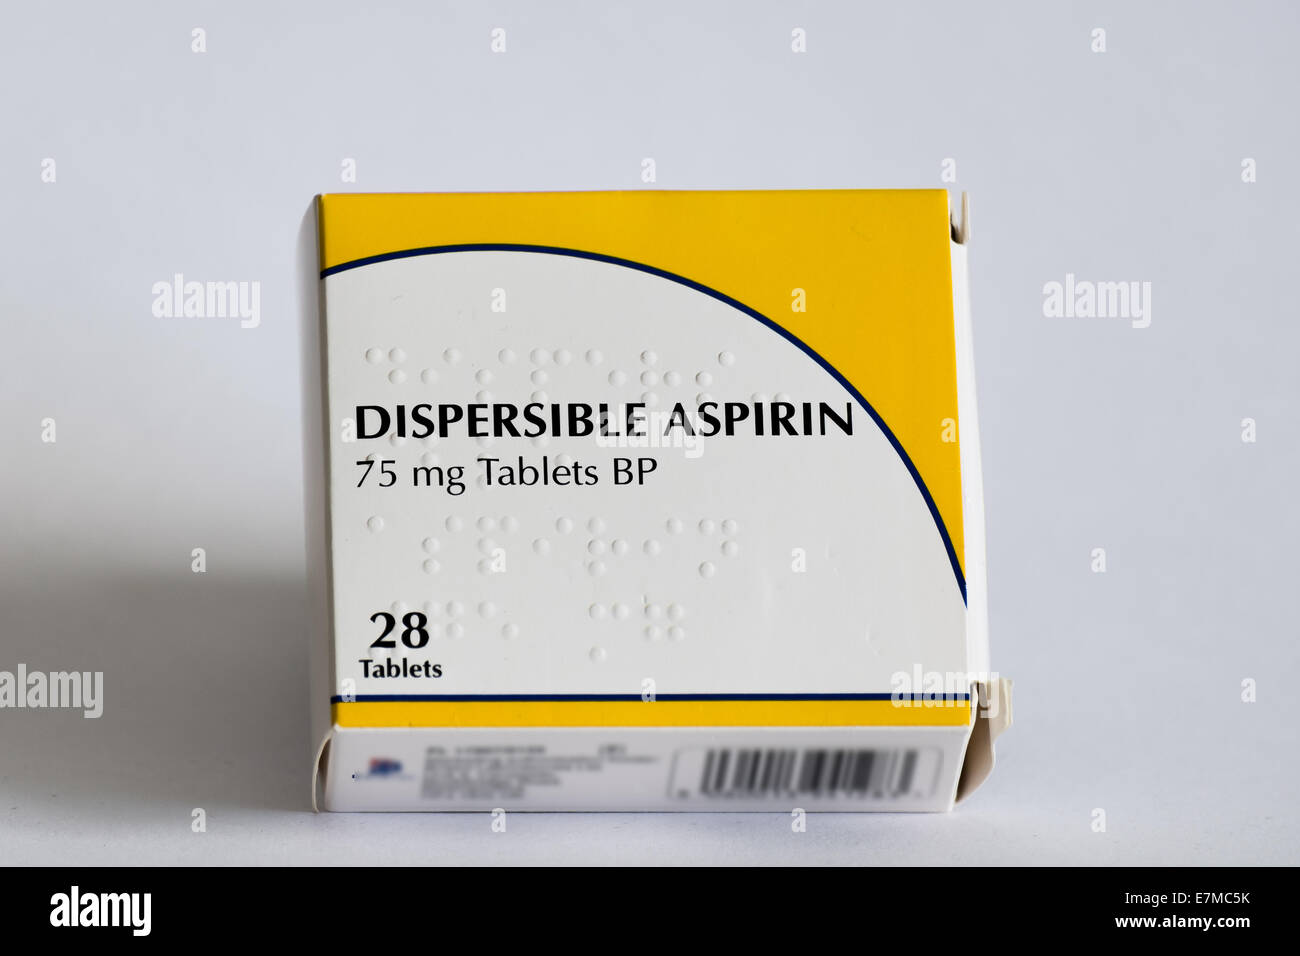 Aspirin is an antiplatelet medicine, which means it reduces the risk of clots forming in your blood. - Stock Image